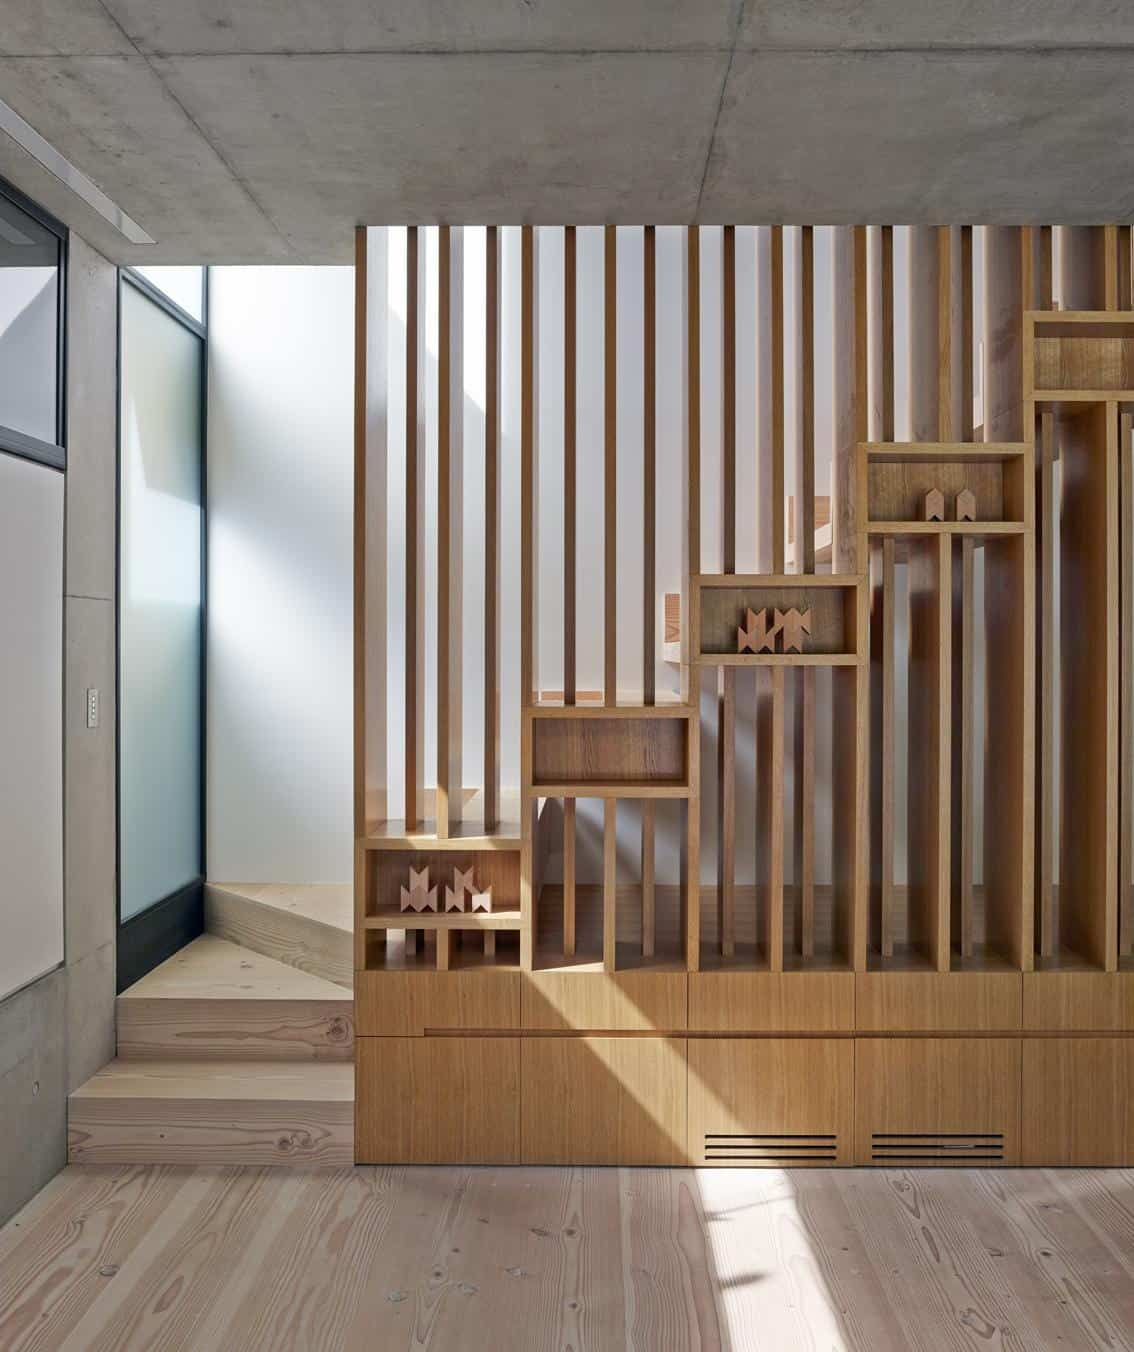 14 Staircases Design Ideas: 15 Geometric Staircase Designs